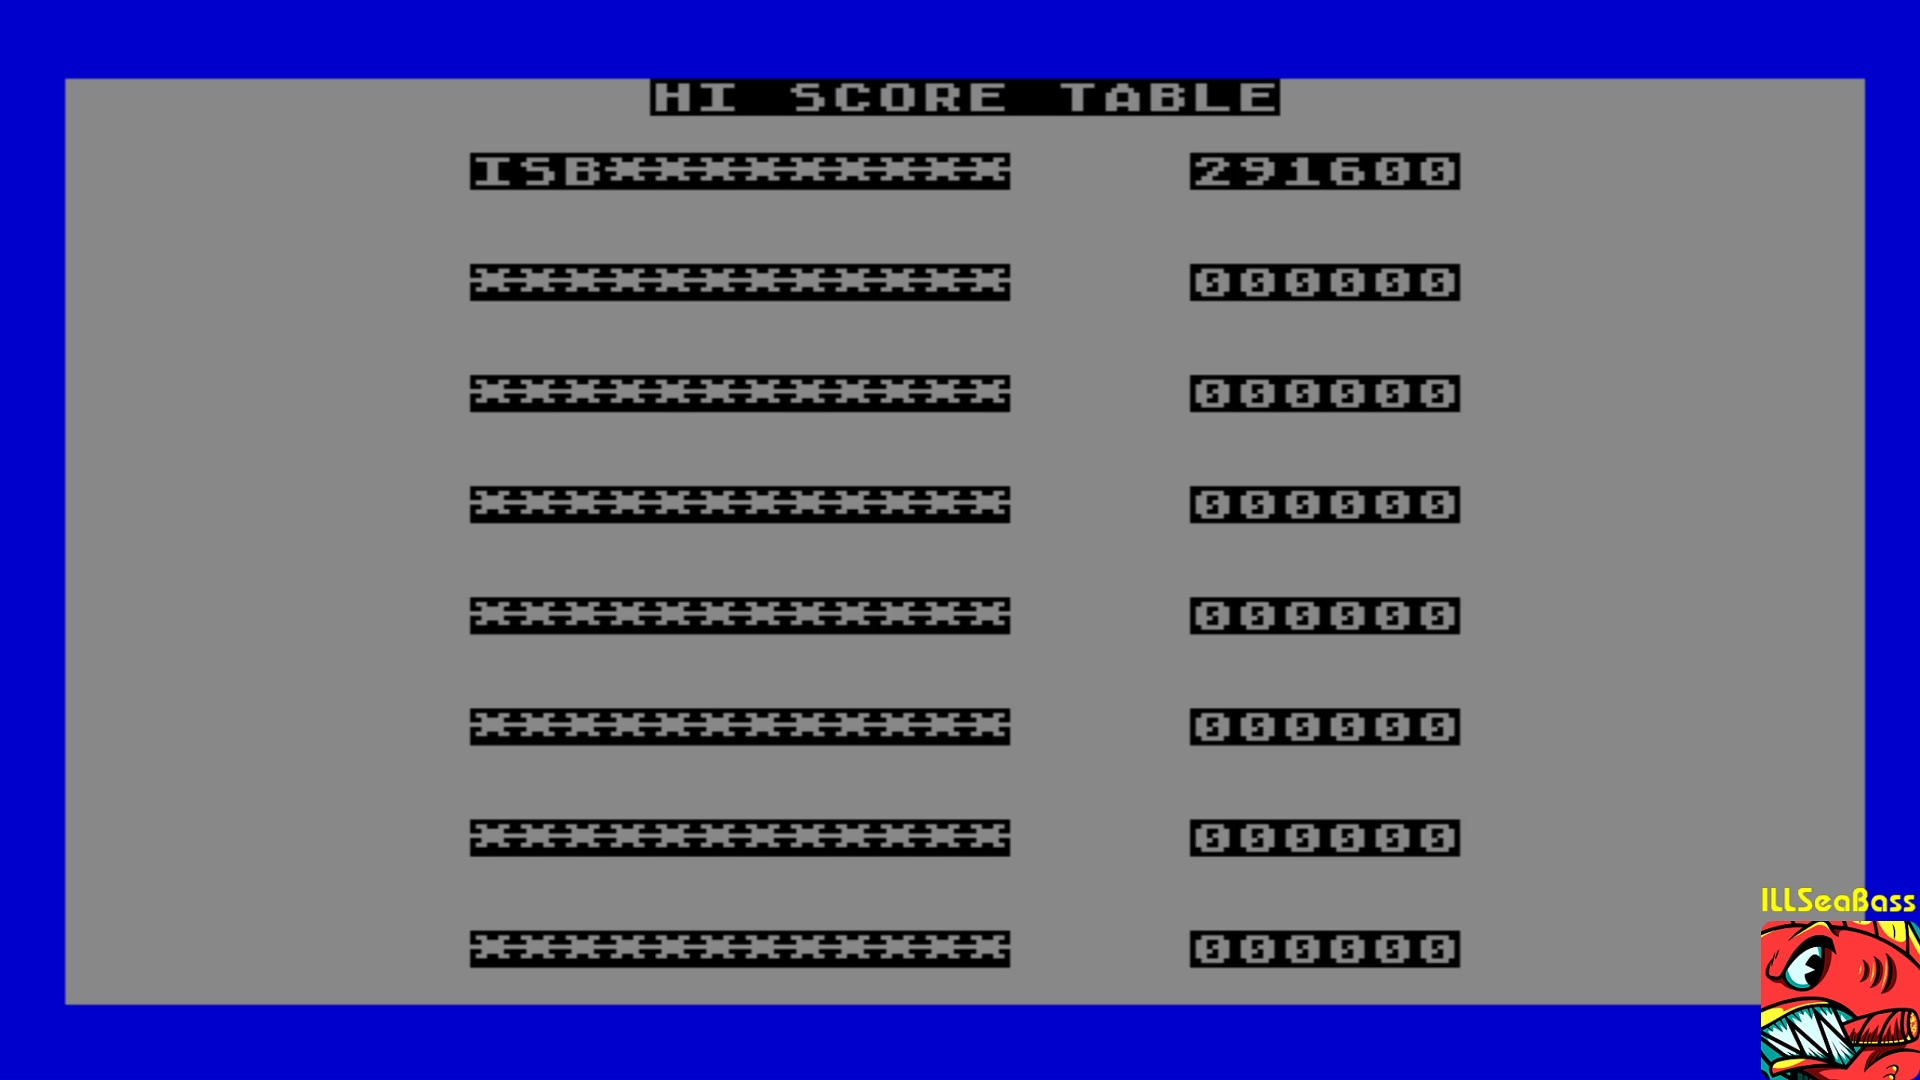 ILLSeaBass: Mr. Dig: Extremely Easy (Commodore 64 Emulated) 291,600 points on 2018-01-20 15:23:35